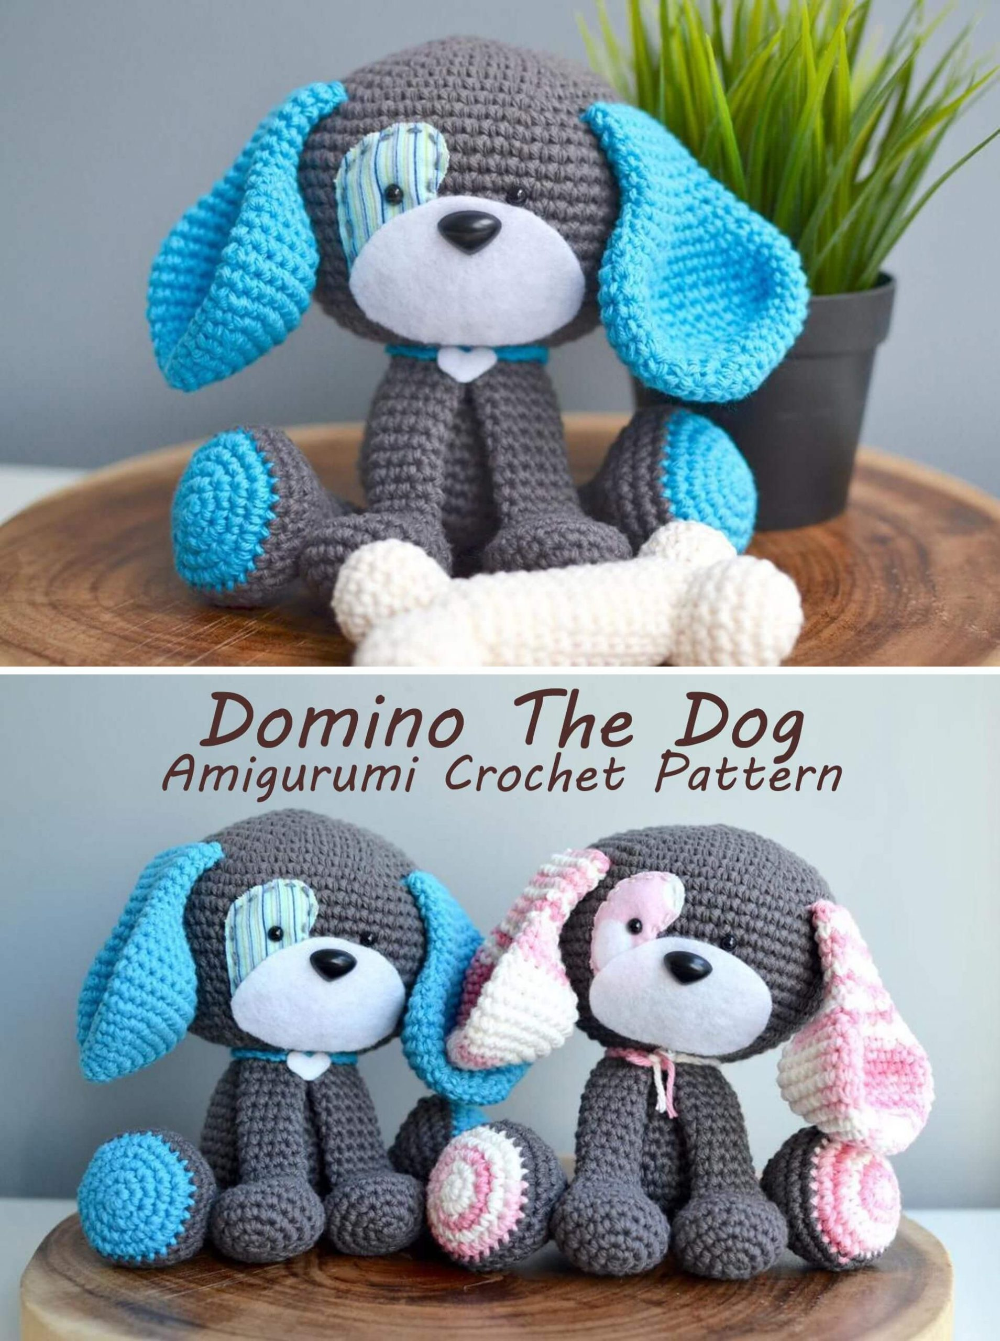 Mabel Bunny & Co.: 15 Loveable Animals to Crochet Using Chunky ... | 1341x1000